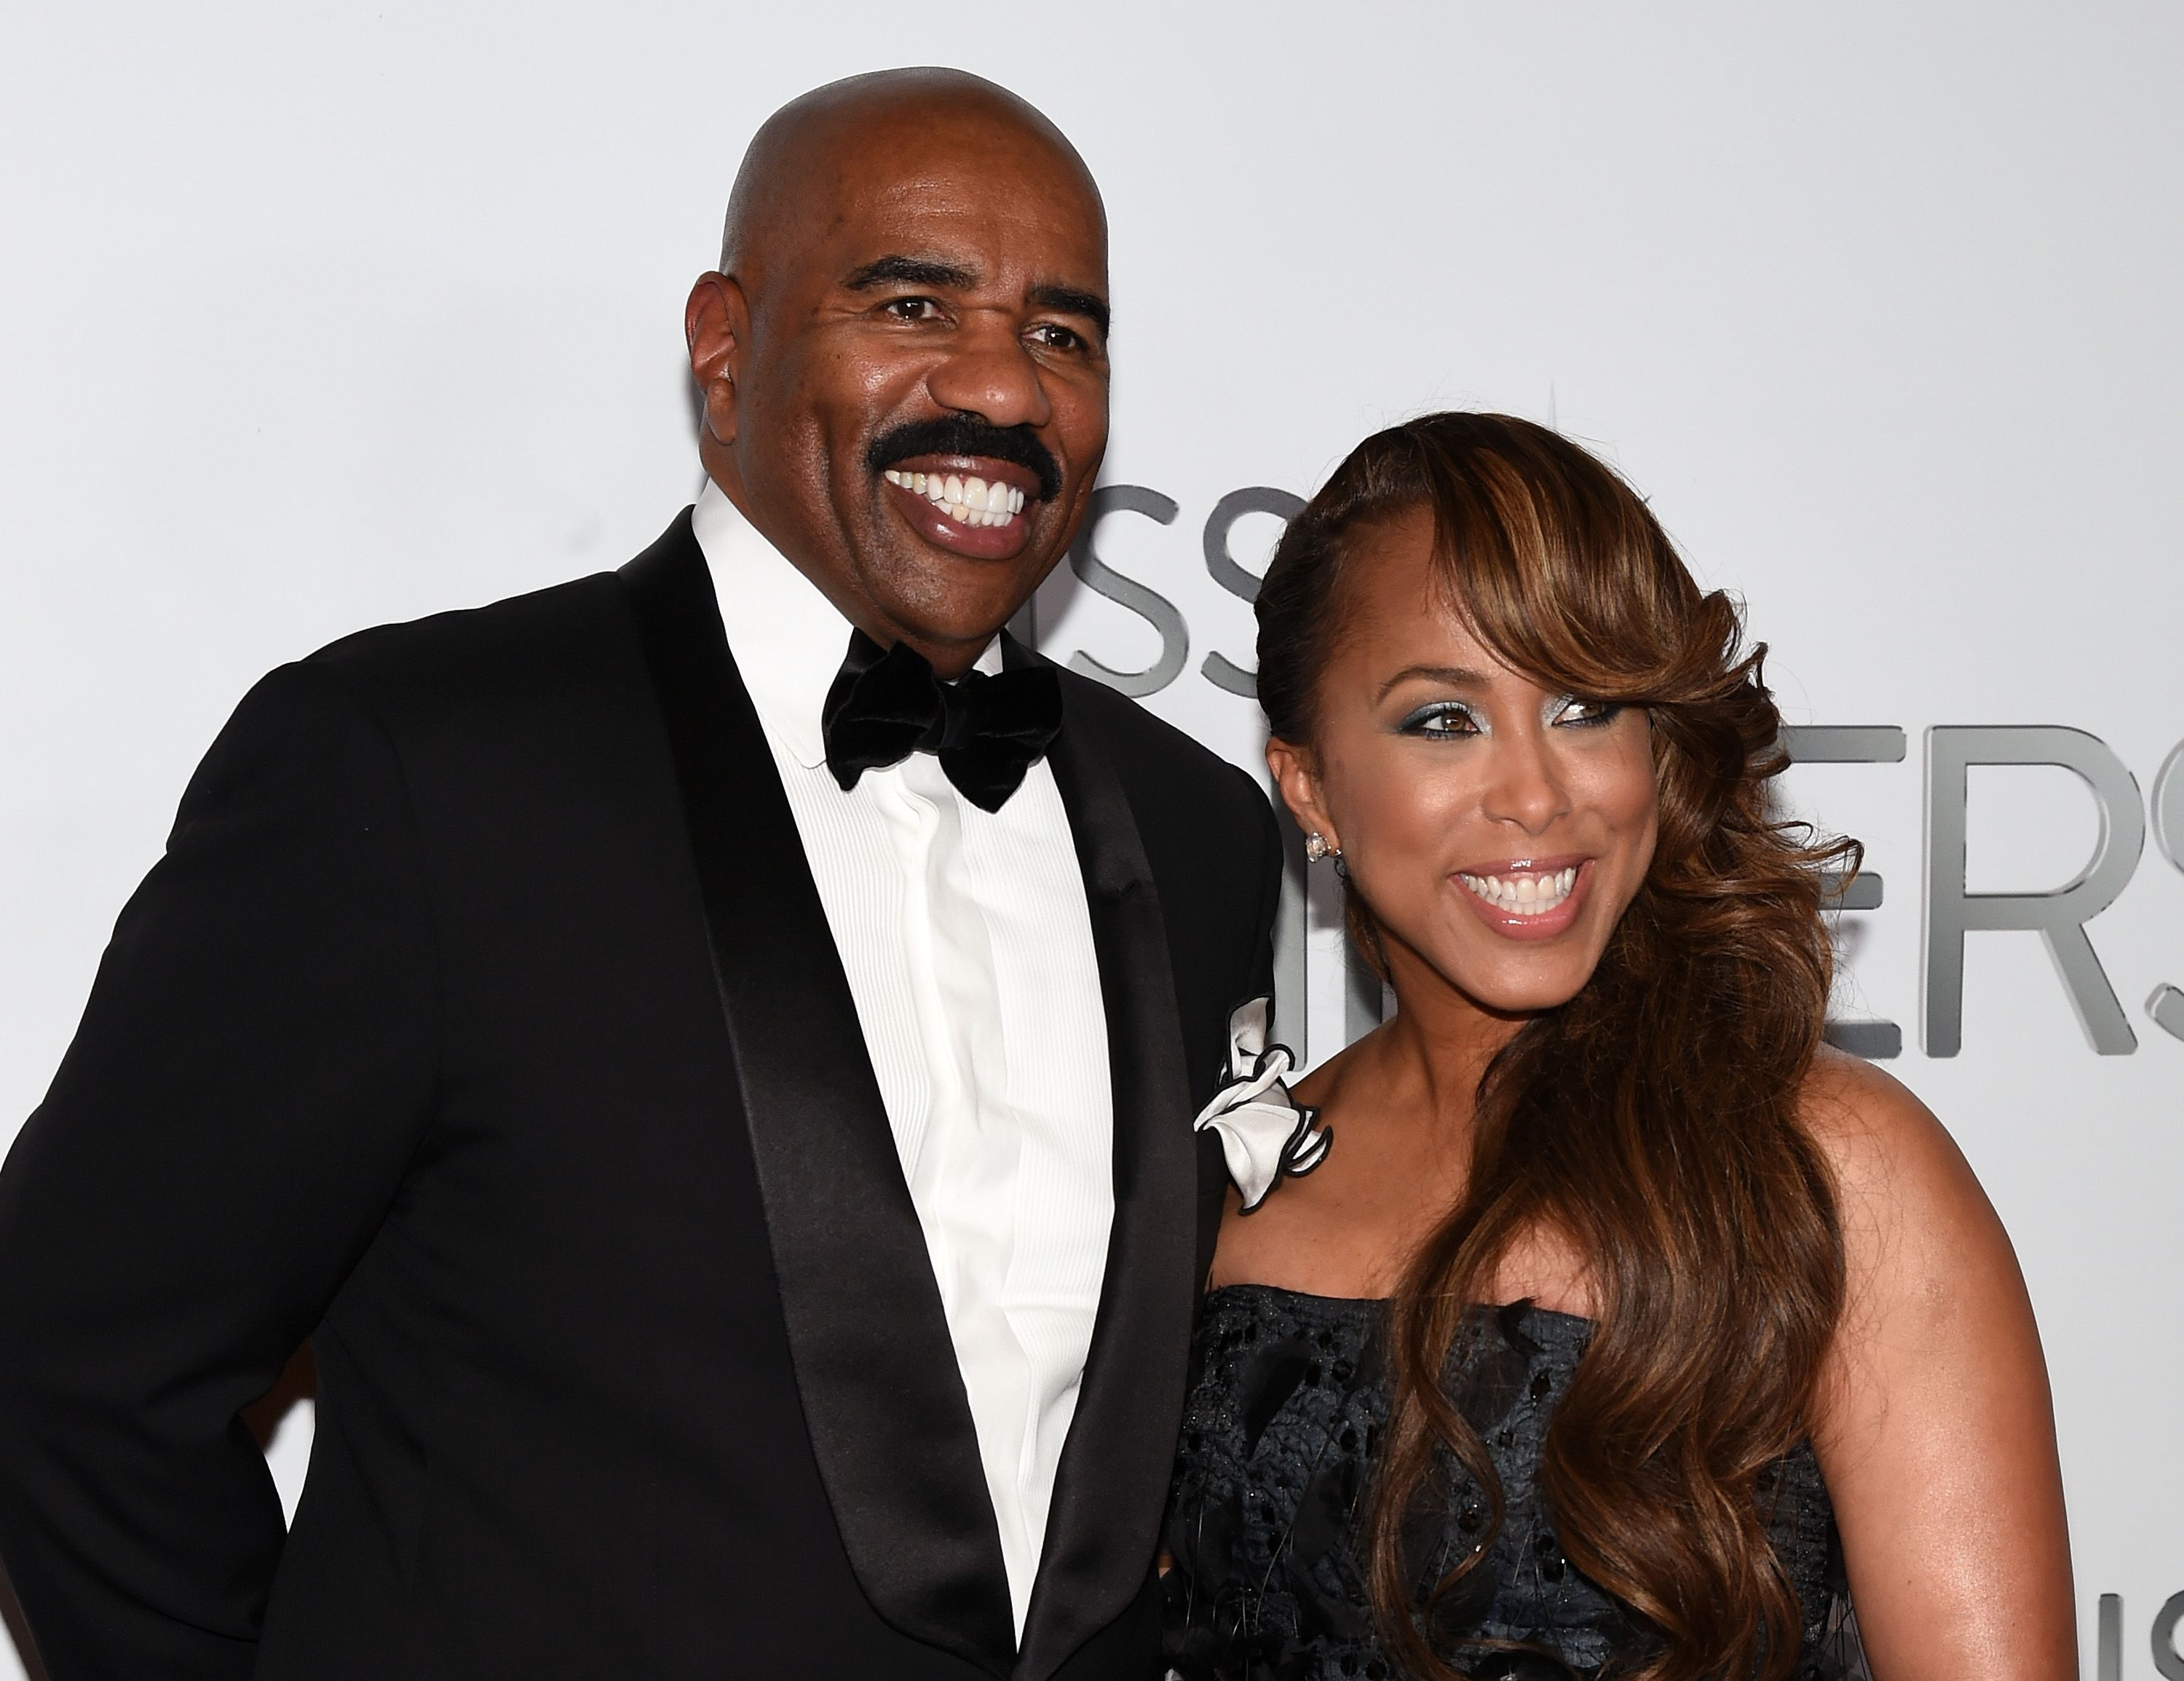 Steve Harvey and Marjorie Harvey at the 2015 Miss Universe Pageant at Planet Hollywood Resort & Casino on December 20, 2015 | Photo: Getty Images